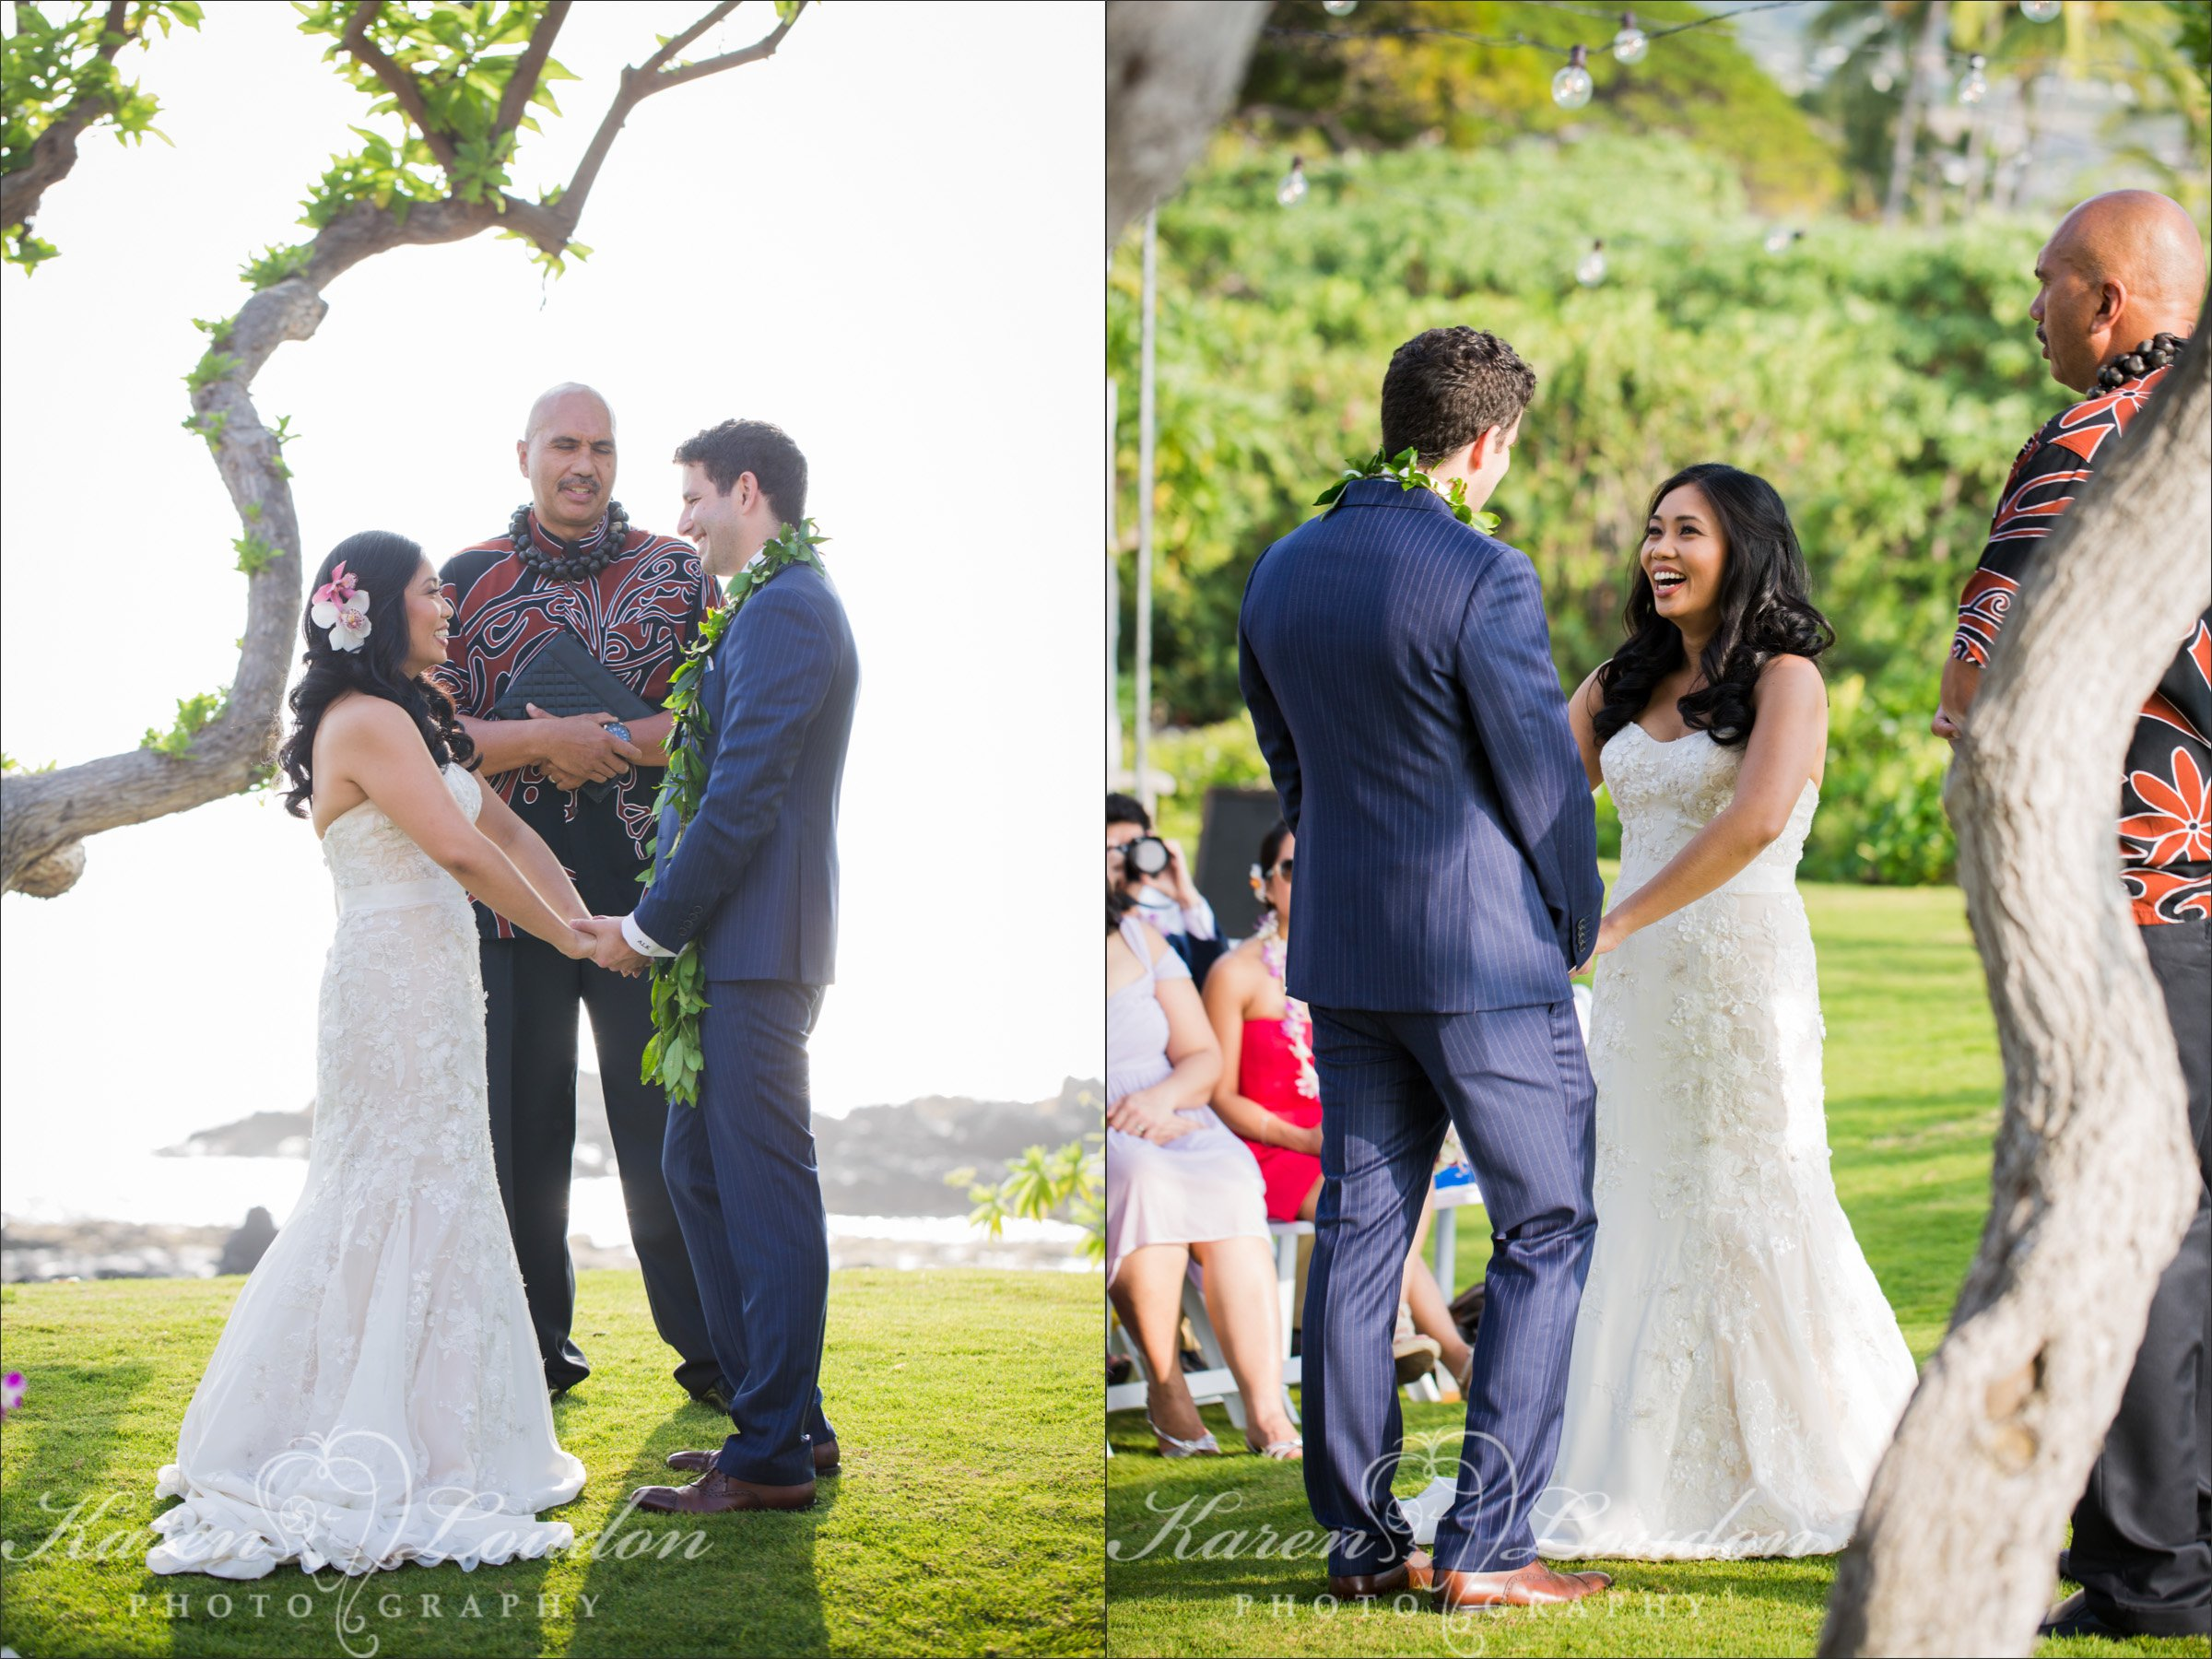 Kailua Kona Wedding Big Island Hawaii Photographer